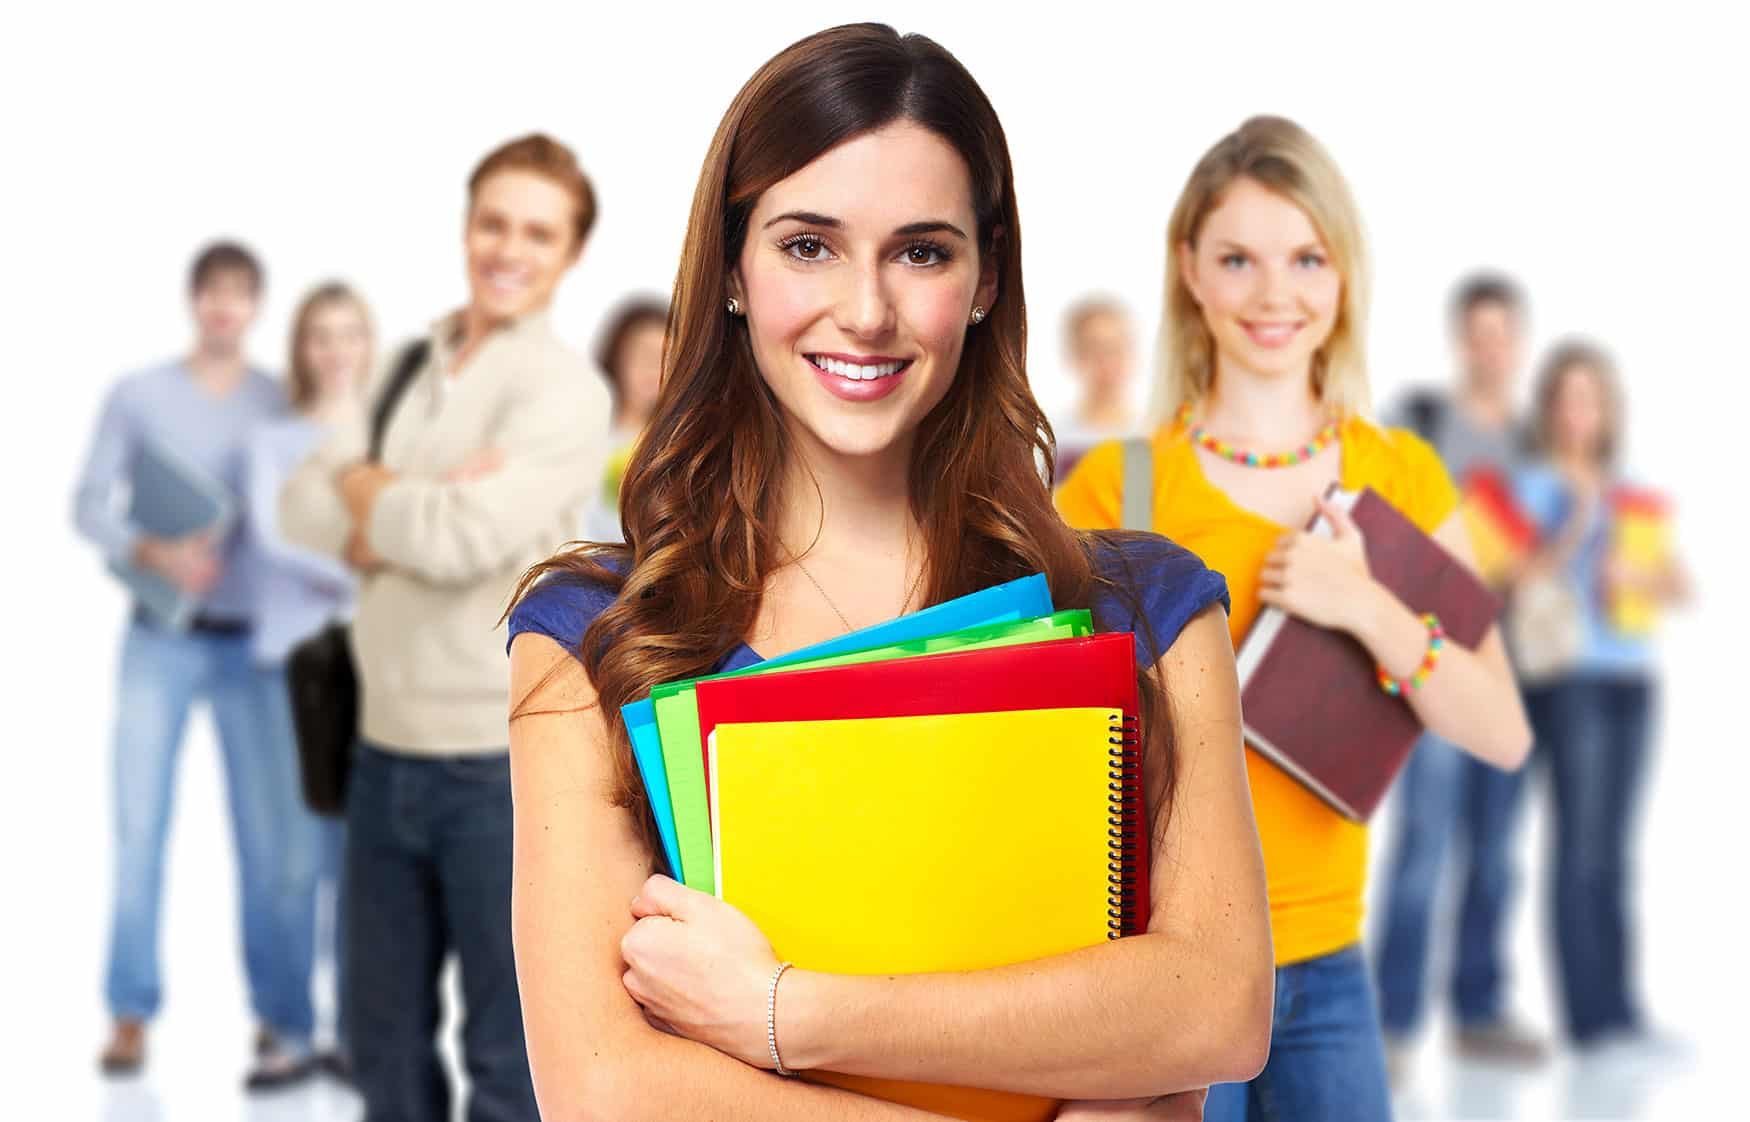 Installment Loans For Students As A Means To Solve Problems Fast